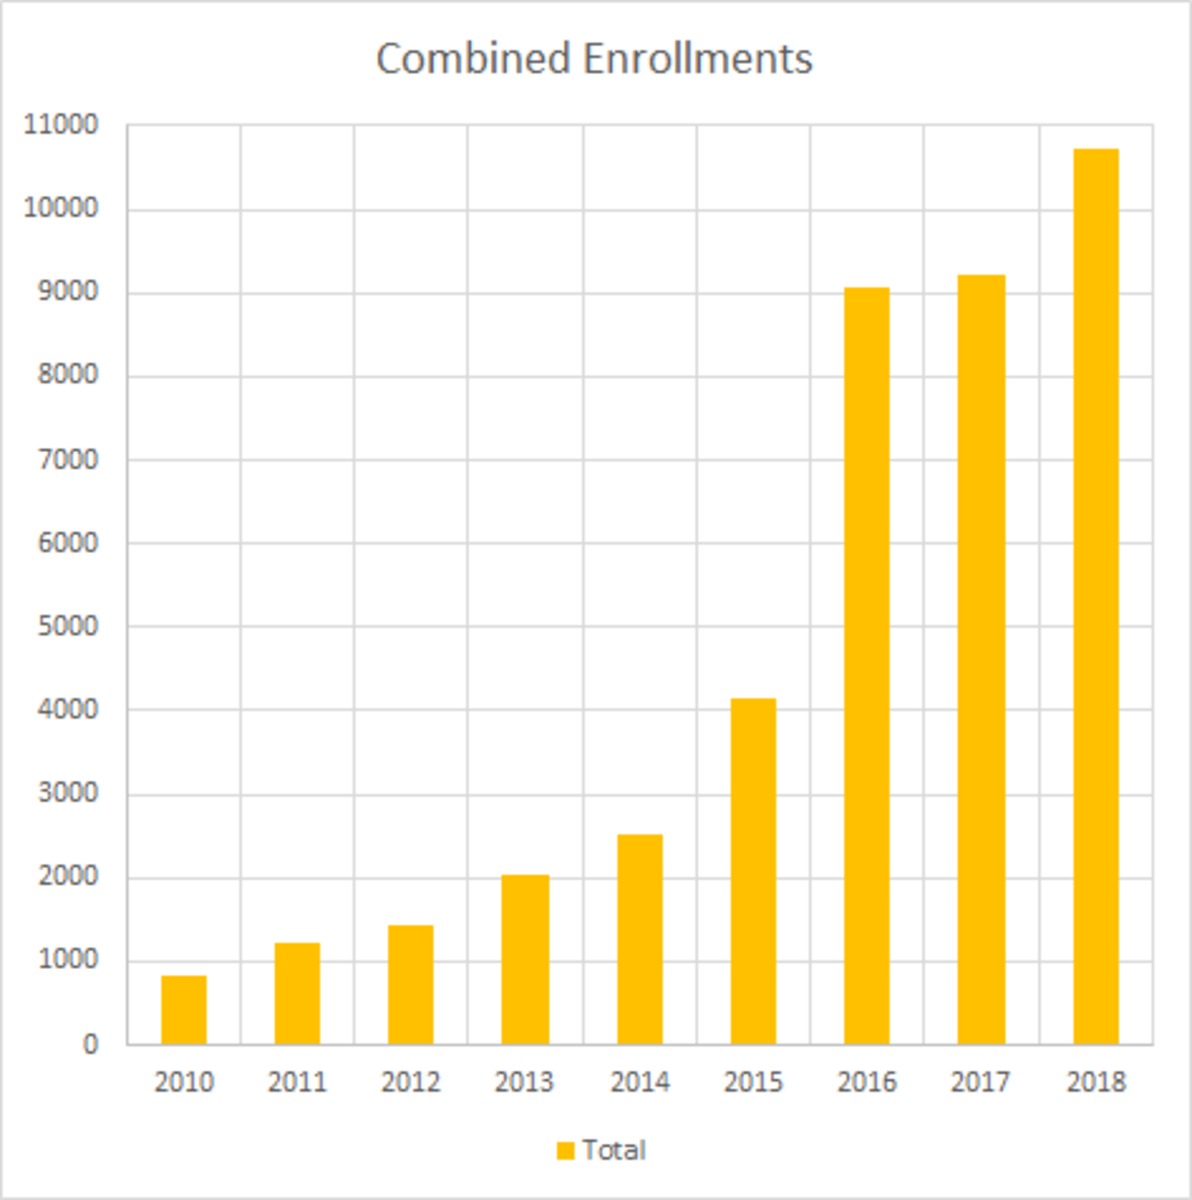 The number of online enrollments has skyrocketed from previous years.The number of online enrollments has skyrocketed from previous years, as evident by both graphs.